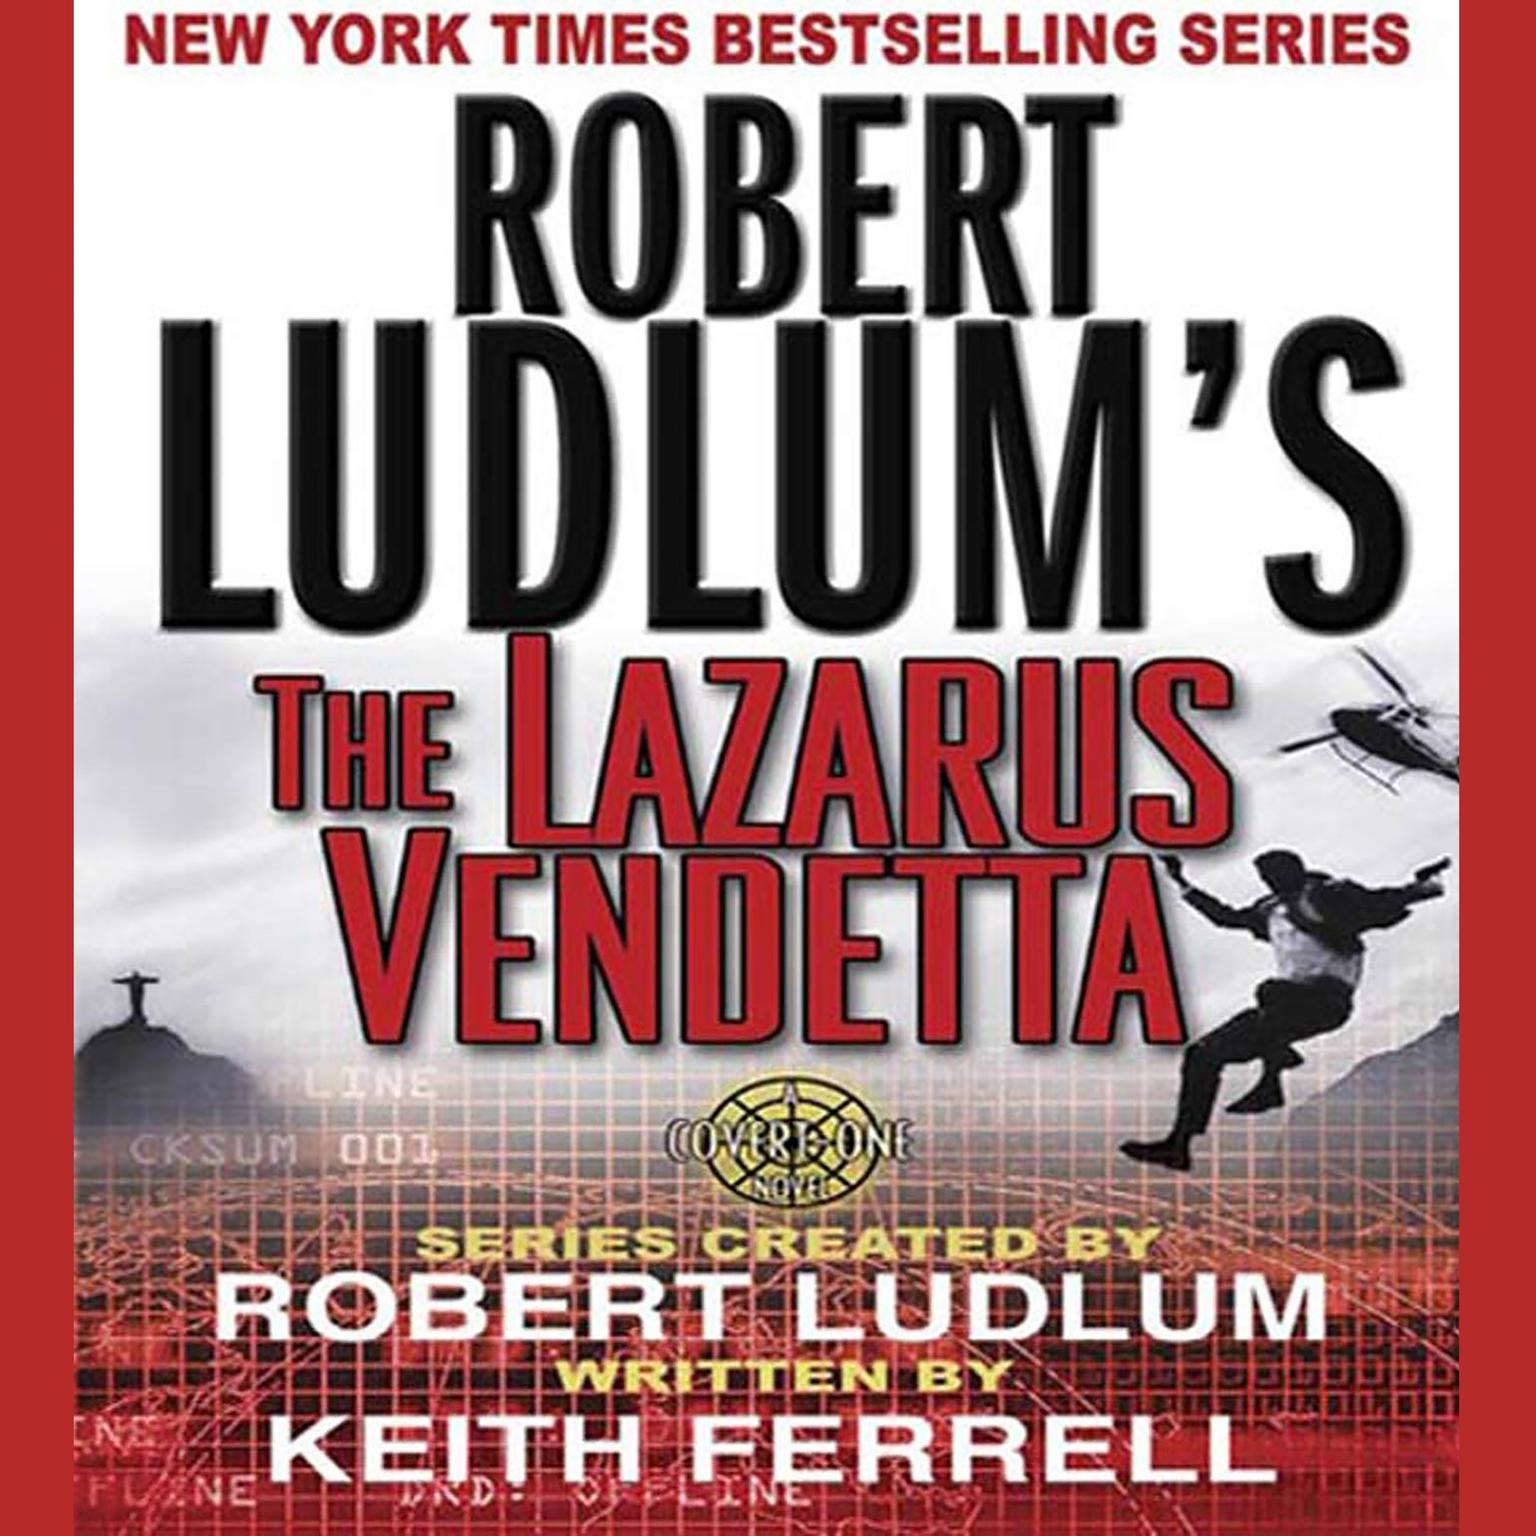 Printable Robert Ludlum's The Lazarus Vendetta: A Covert-One Novel Audiobook Cover Art